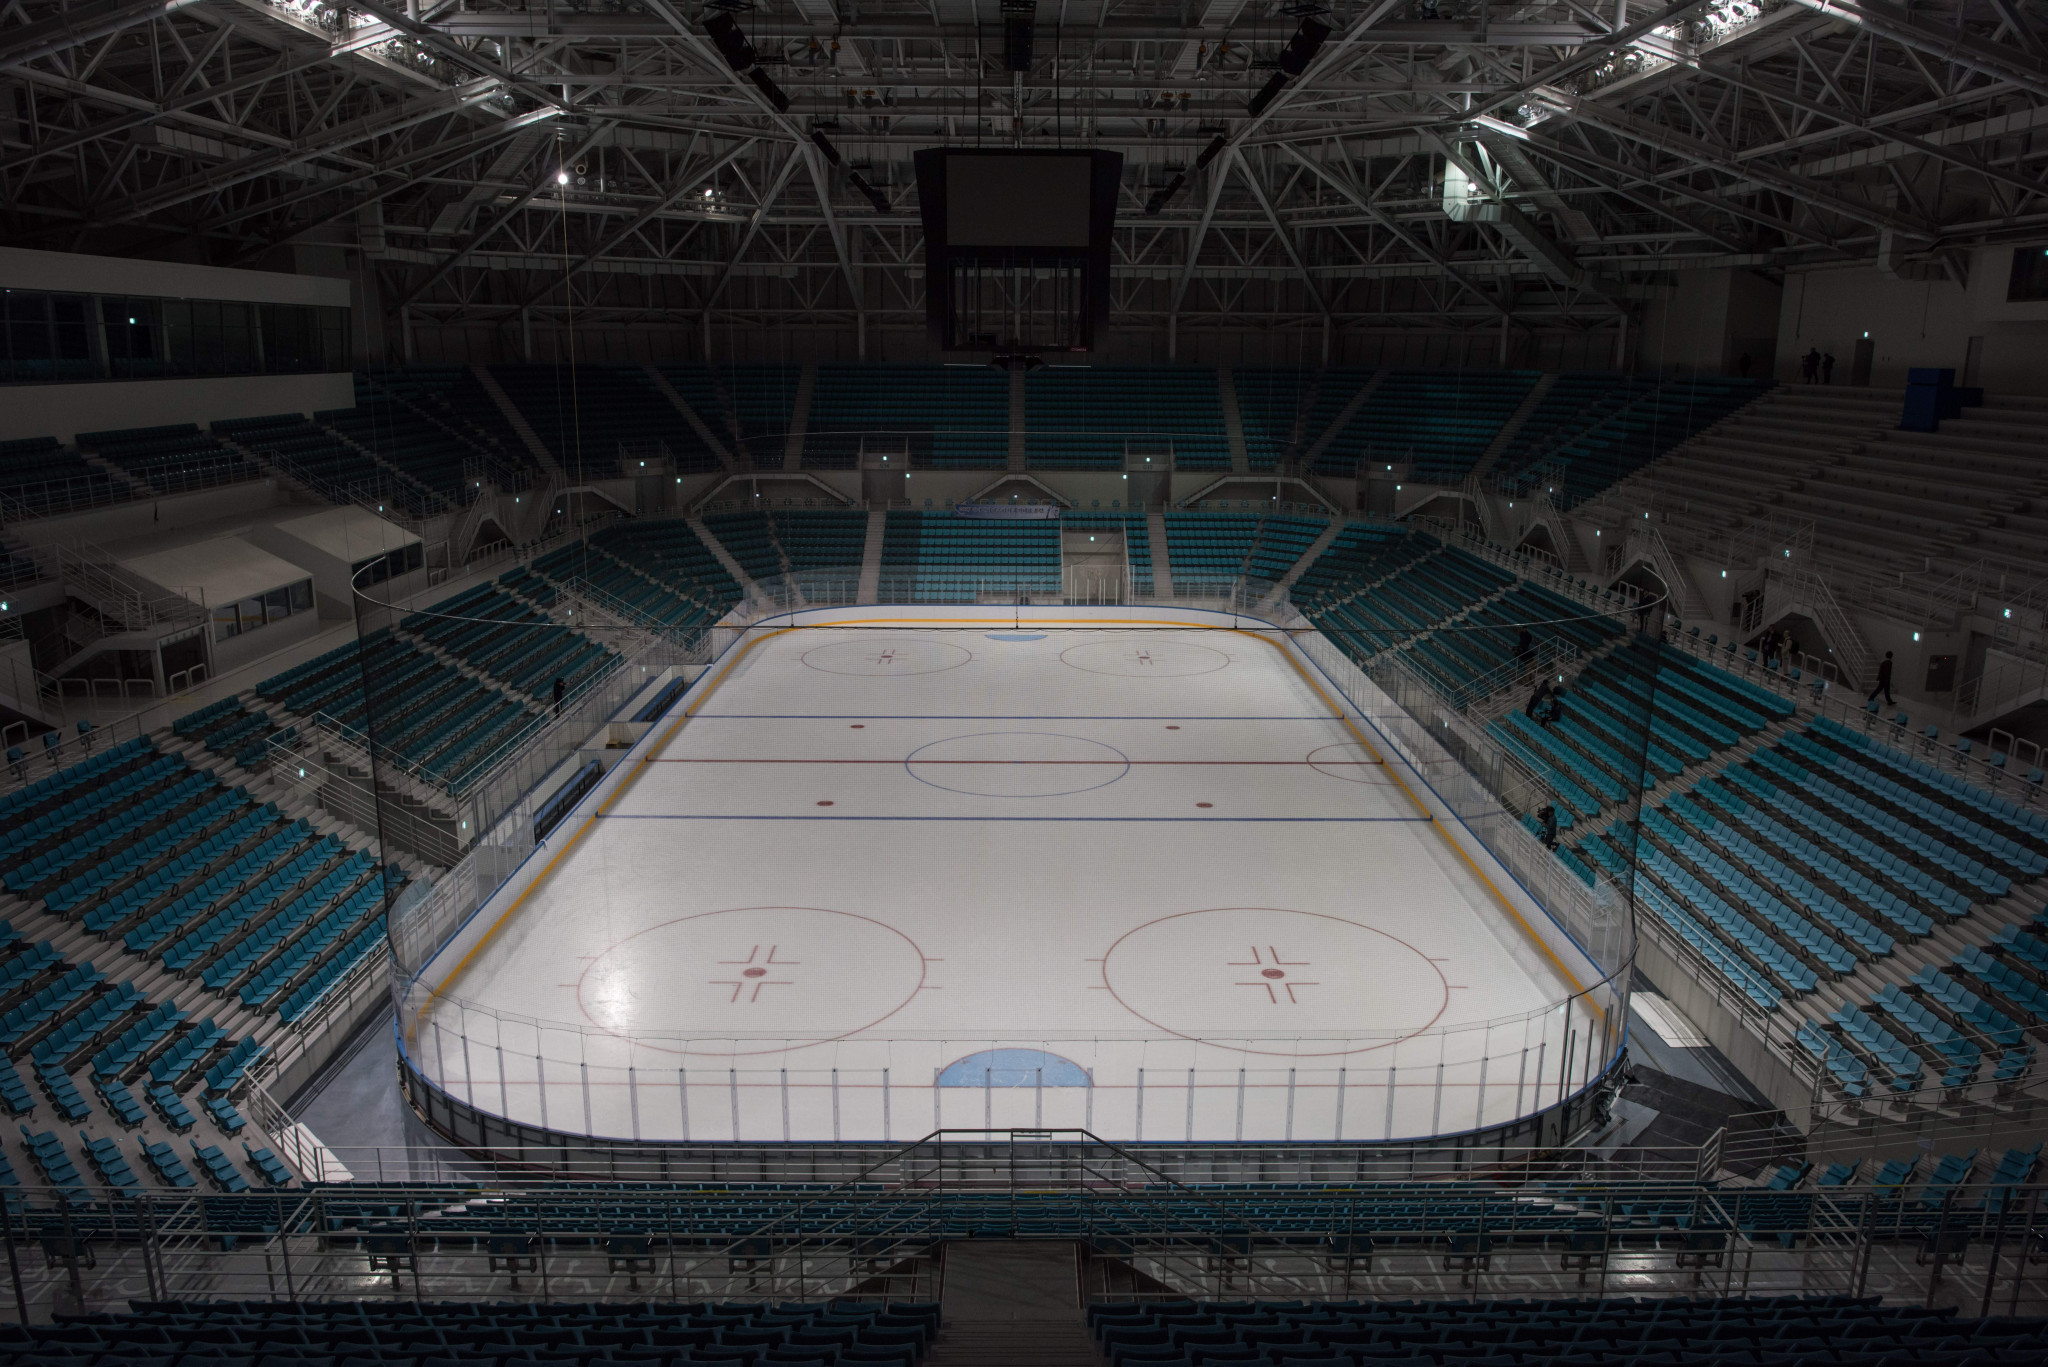 Competition is set to take place at the Gangneung Hockey Centre ©Getty Images